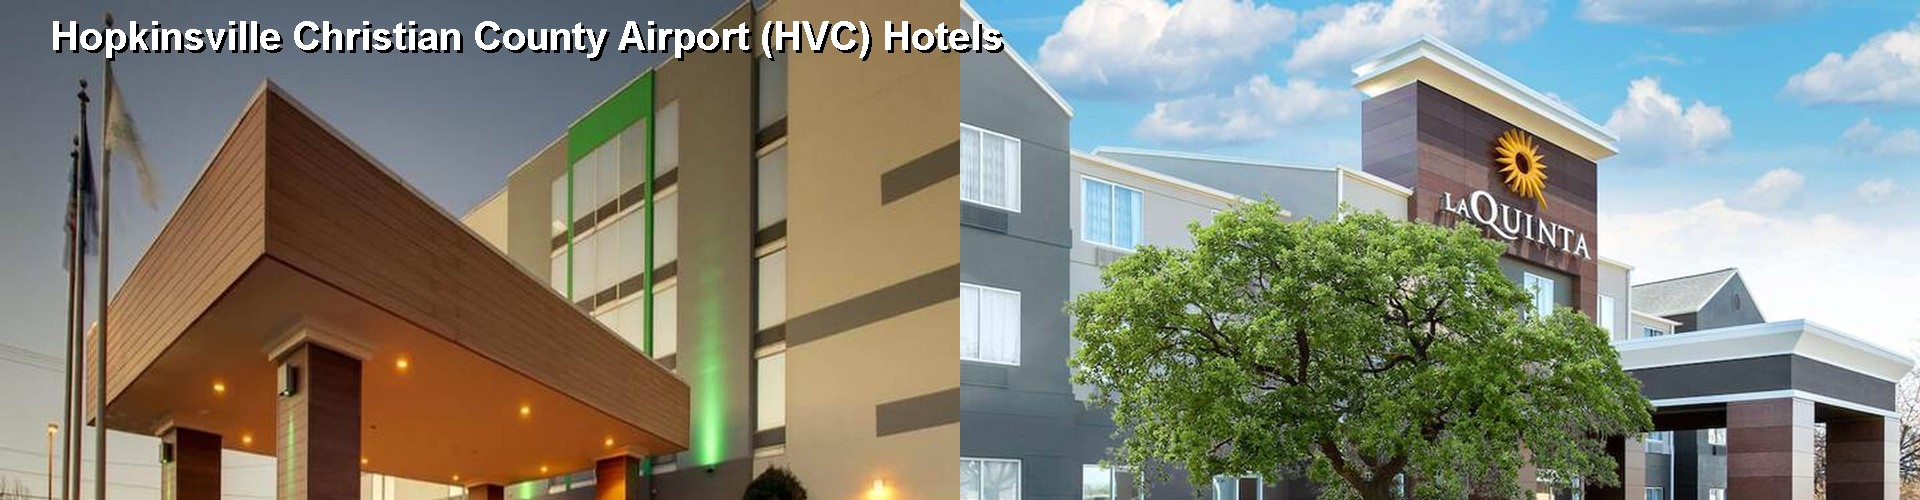 5 Best Hotels near Hopkinsville Christian County Airport (HVC)